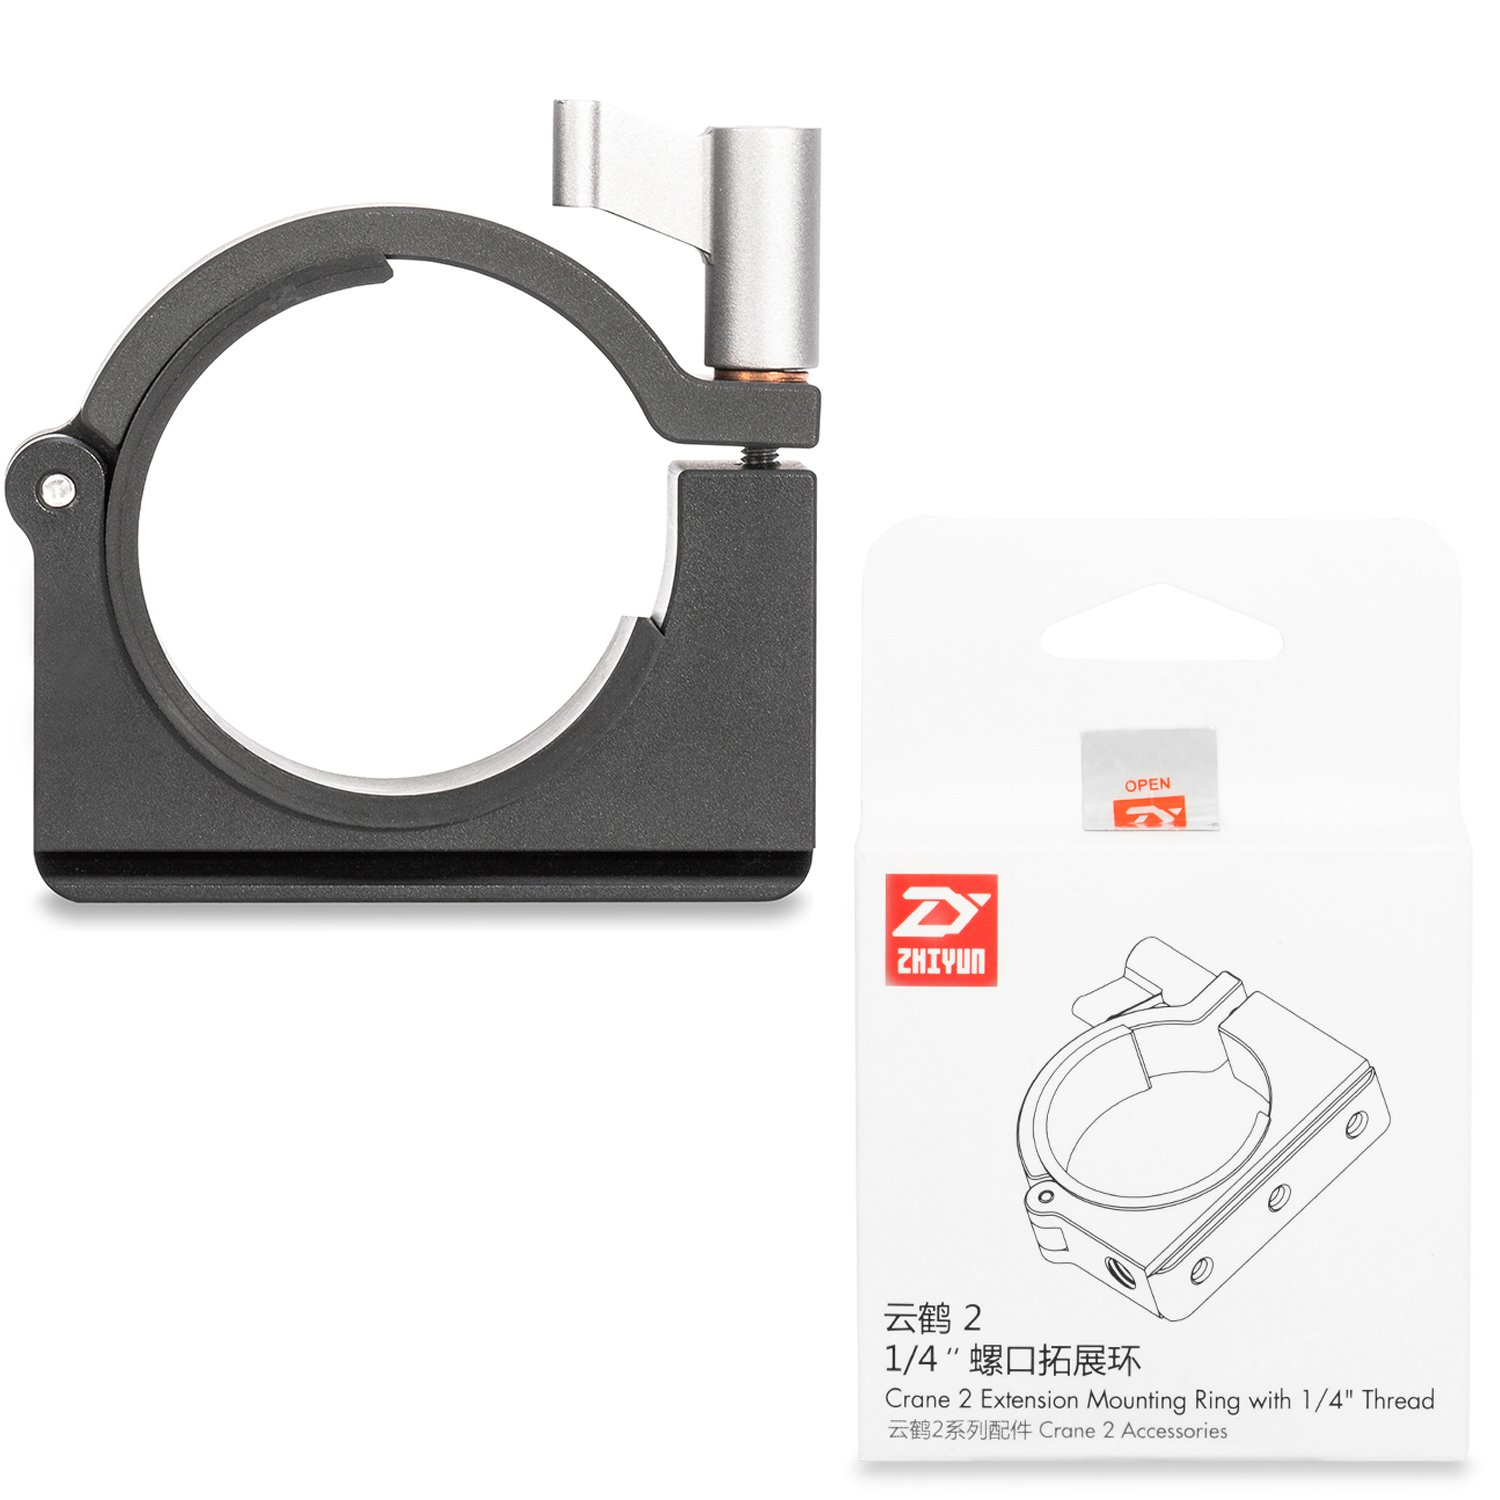 Zhiyun Crane 2/Crane Plus/Crane V2 Extension Mounting Ring with 1/4 Thread